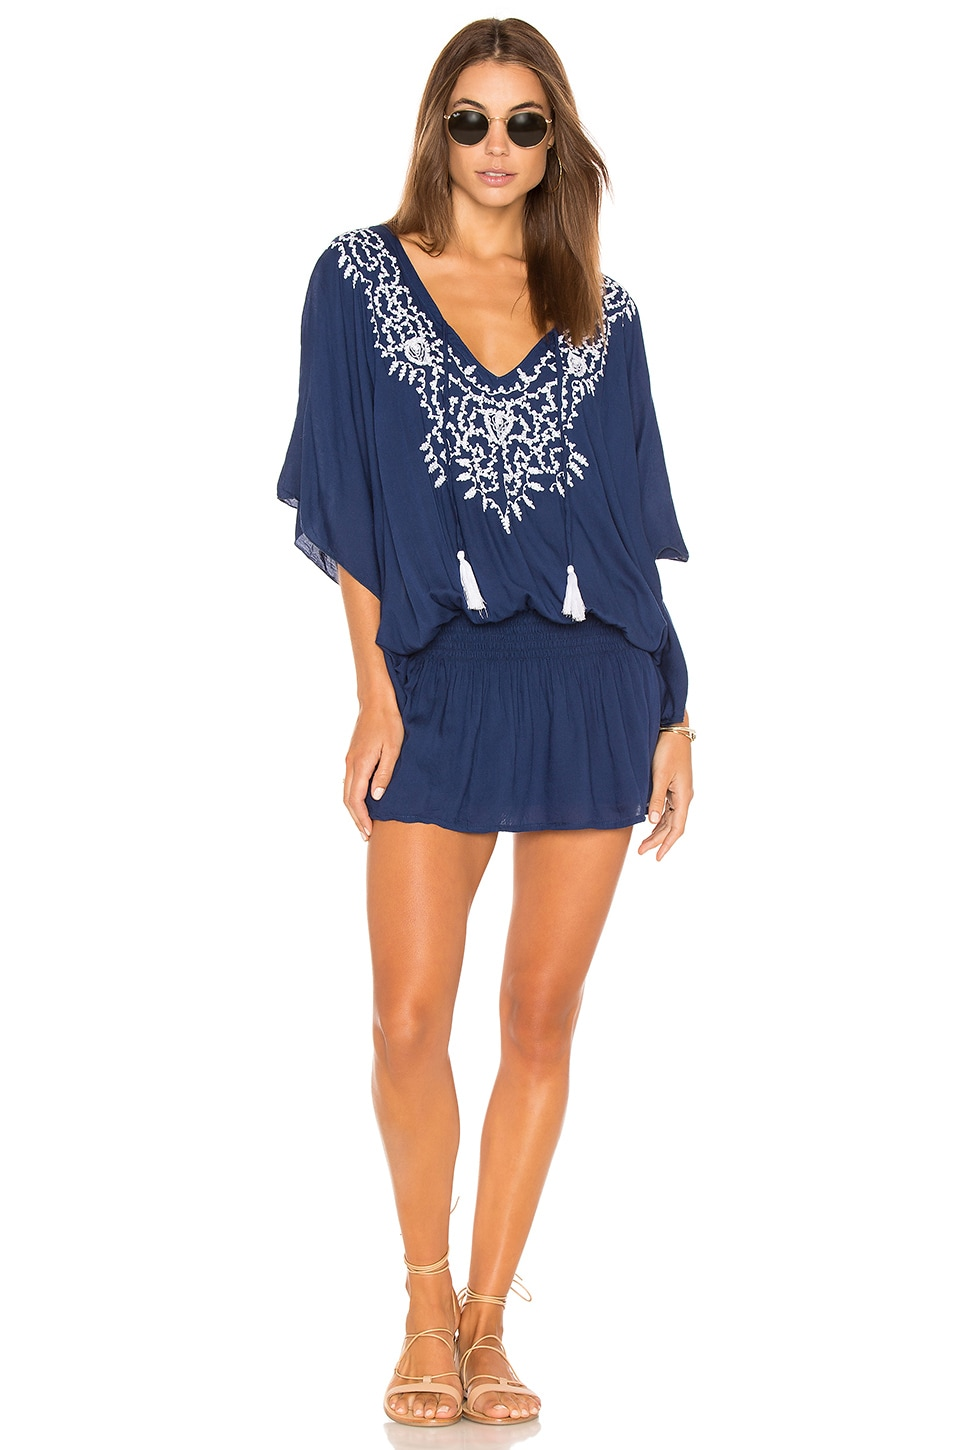 Tiare Hawaii Margarita Dress in Navy & White